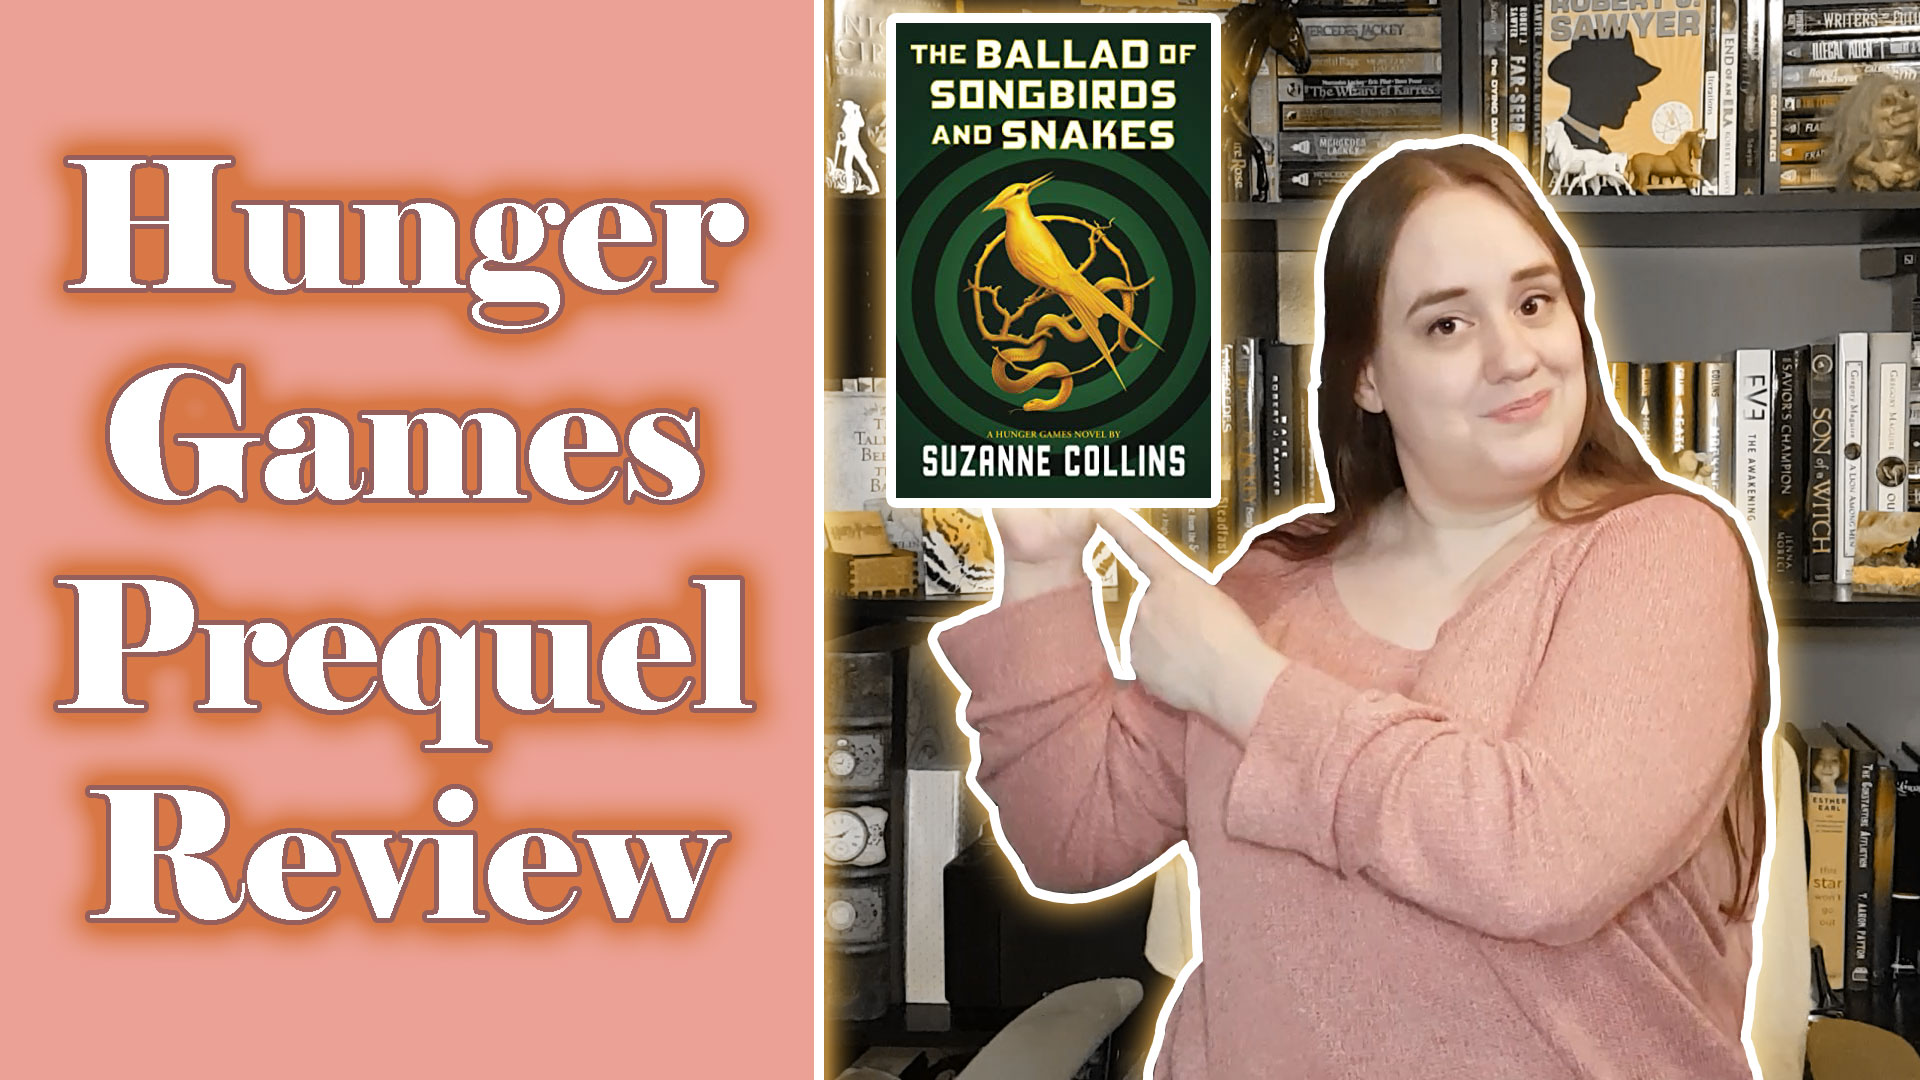 The Ballad of Songbirds and Snakes – 4 Star Review